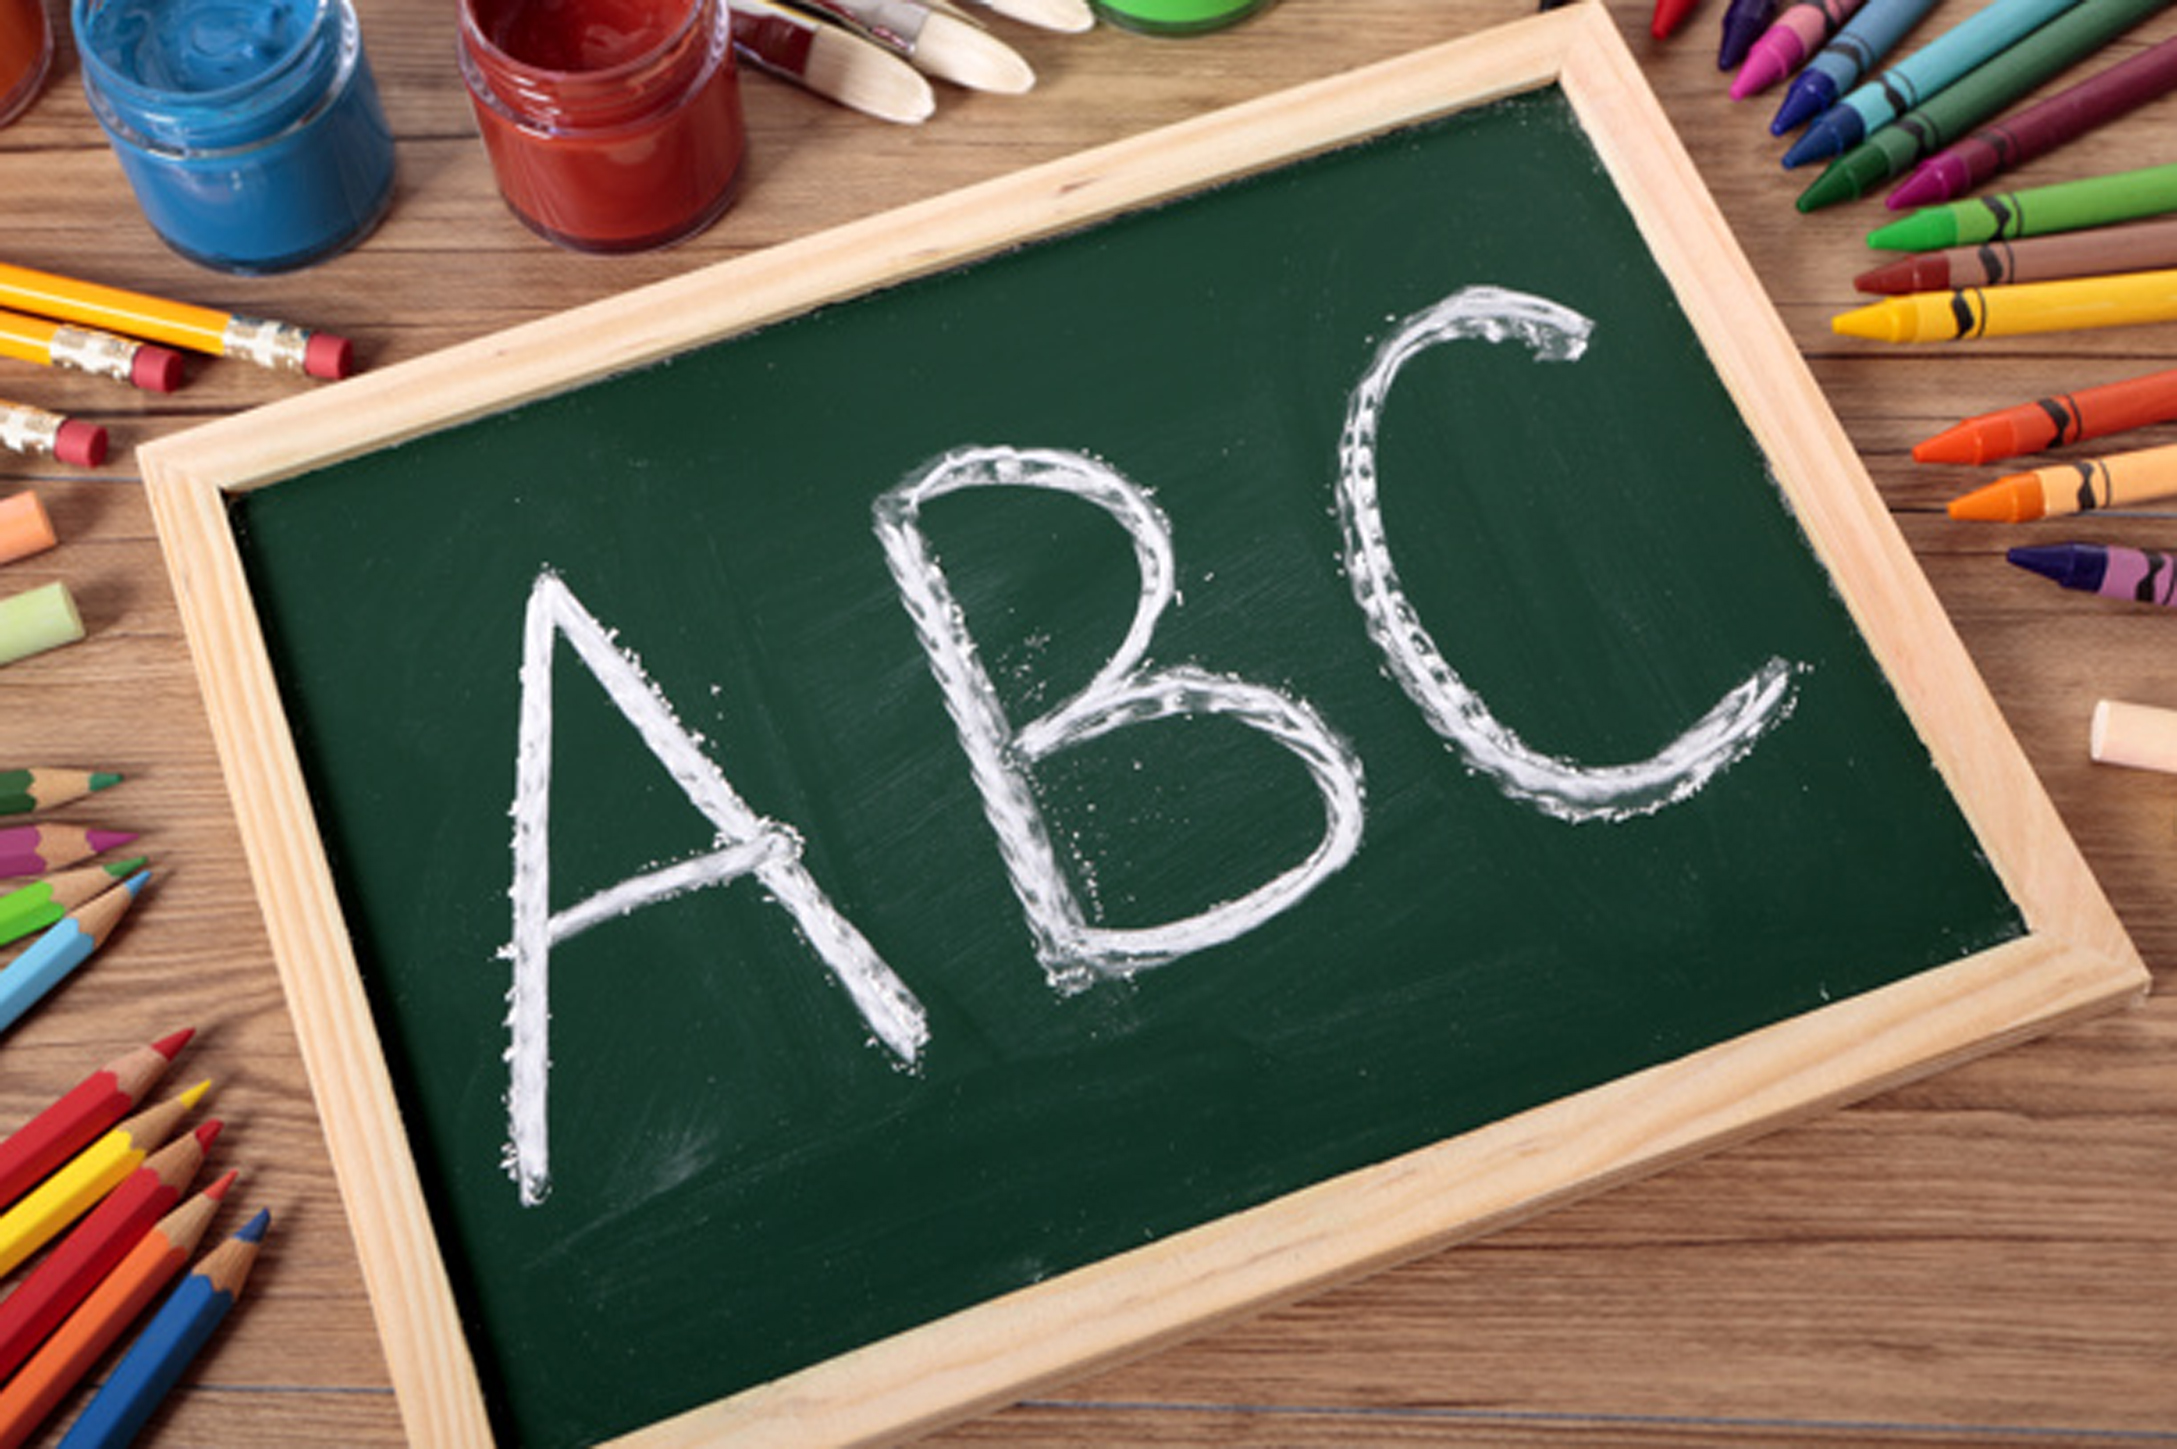 ABC written on a small elementary blackboard with various paints, crayons and pencils on a school desk.